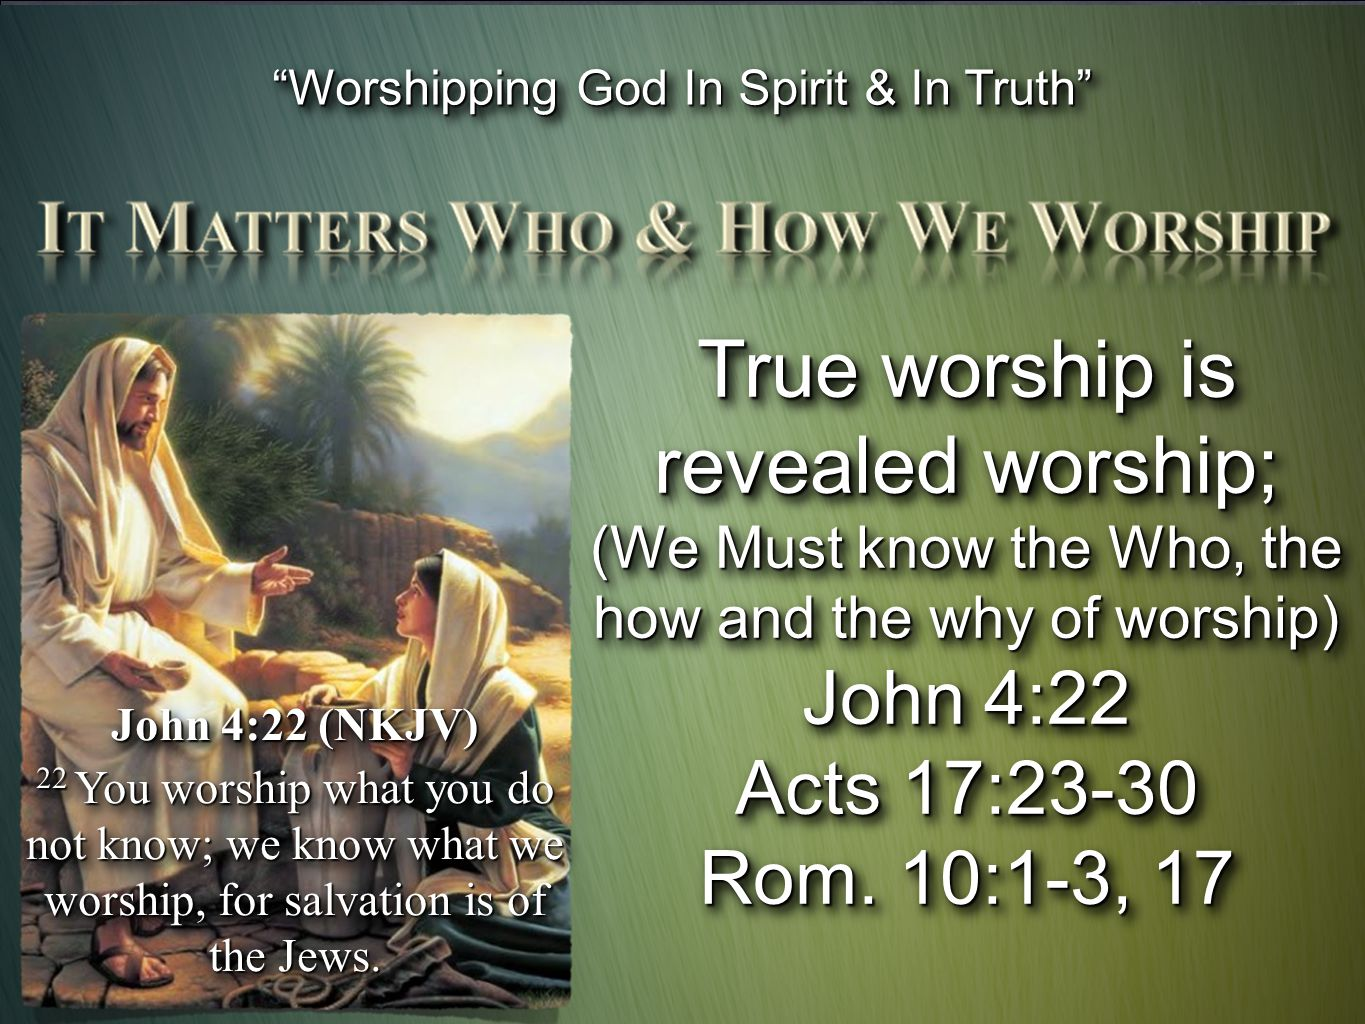 """Worshipping God In Spirit & In Truth"" John 4:22 (NKJV) 22 You worship what you do not know; we know what we worship, for salvation is of the Jews. Jo"